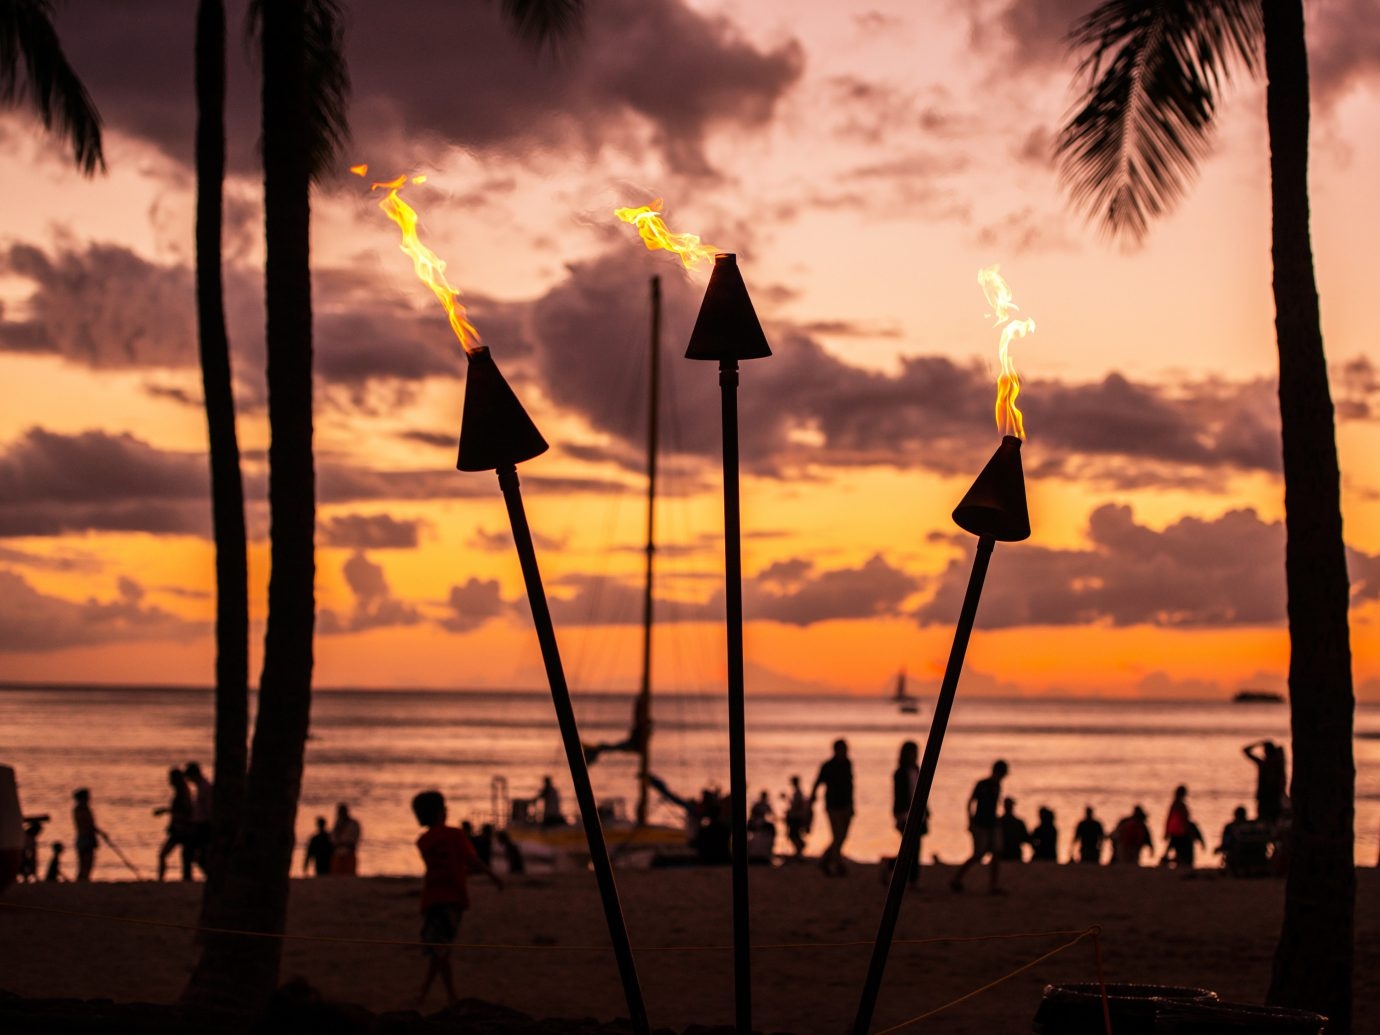 Beach Jetsetter Guides Ocean Scenic views Sunset sky outdoor water cloud Sun evening dusk morning afterglow dawn sunlight sunrise Sea silhouette tree setting clouds sailing vessel shore sandy